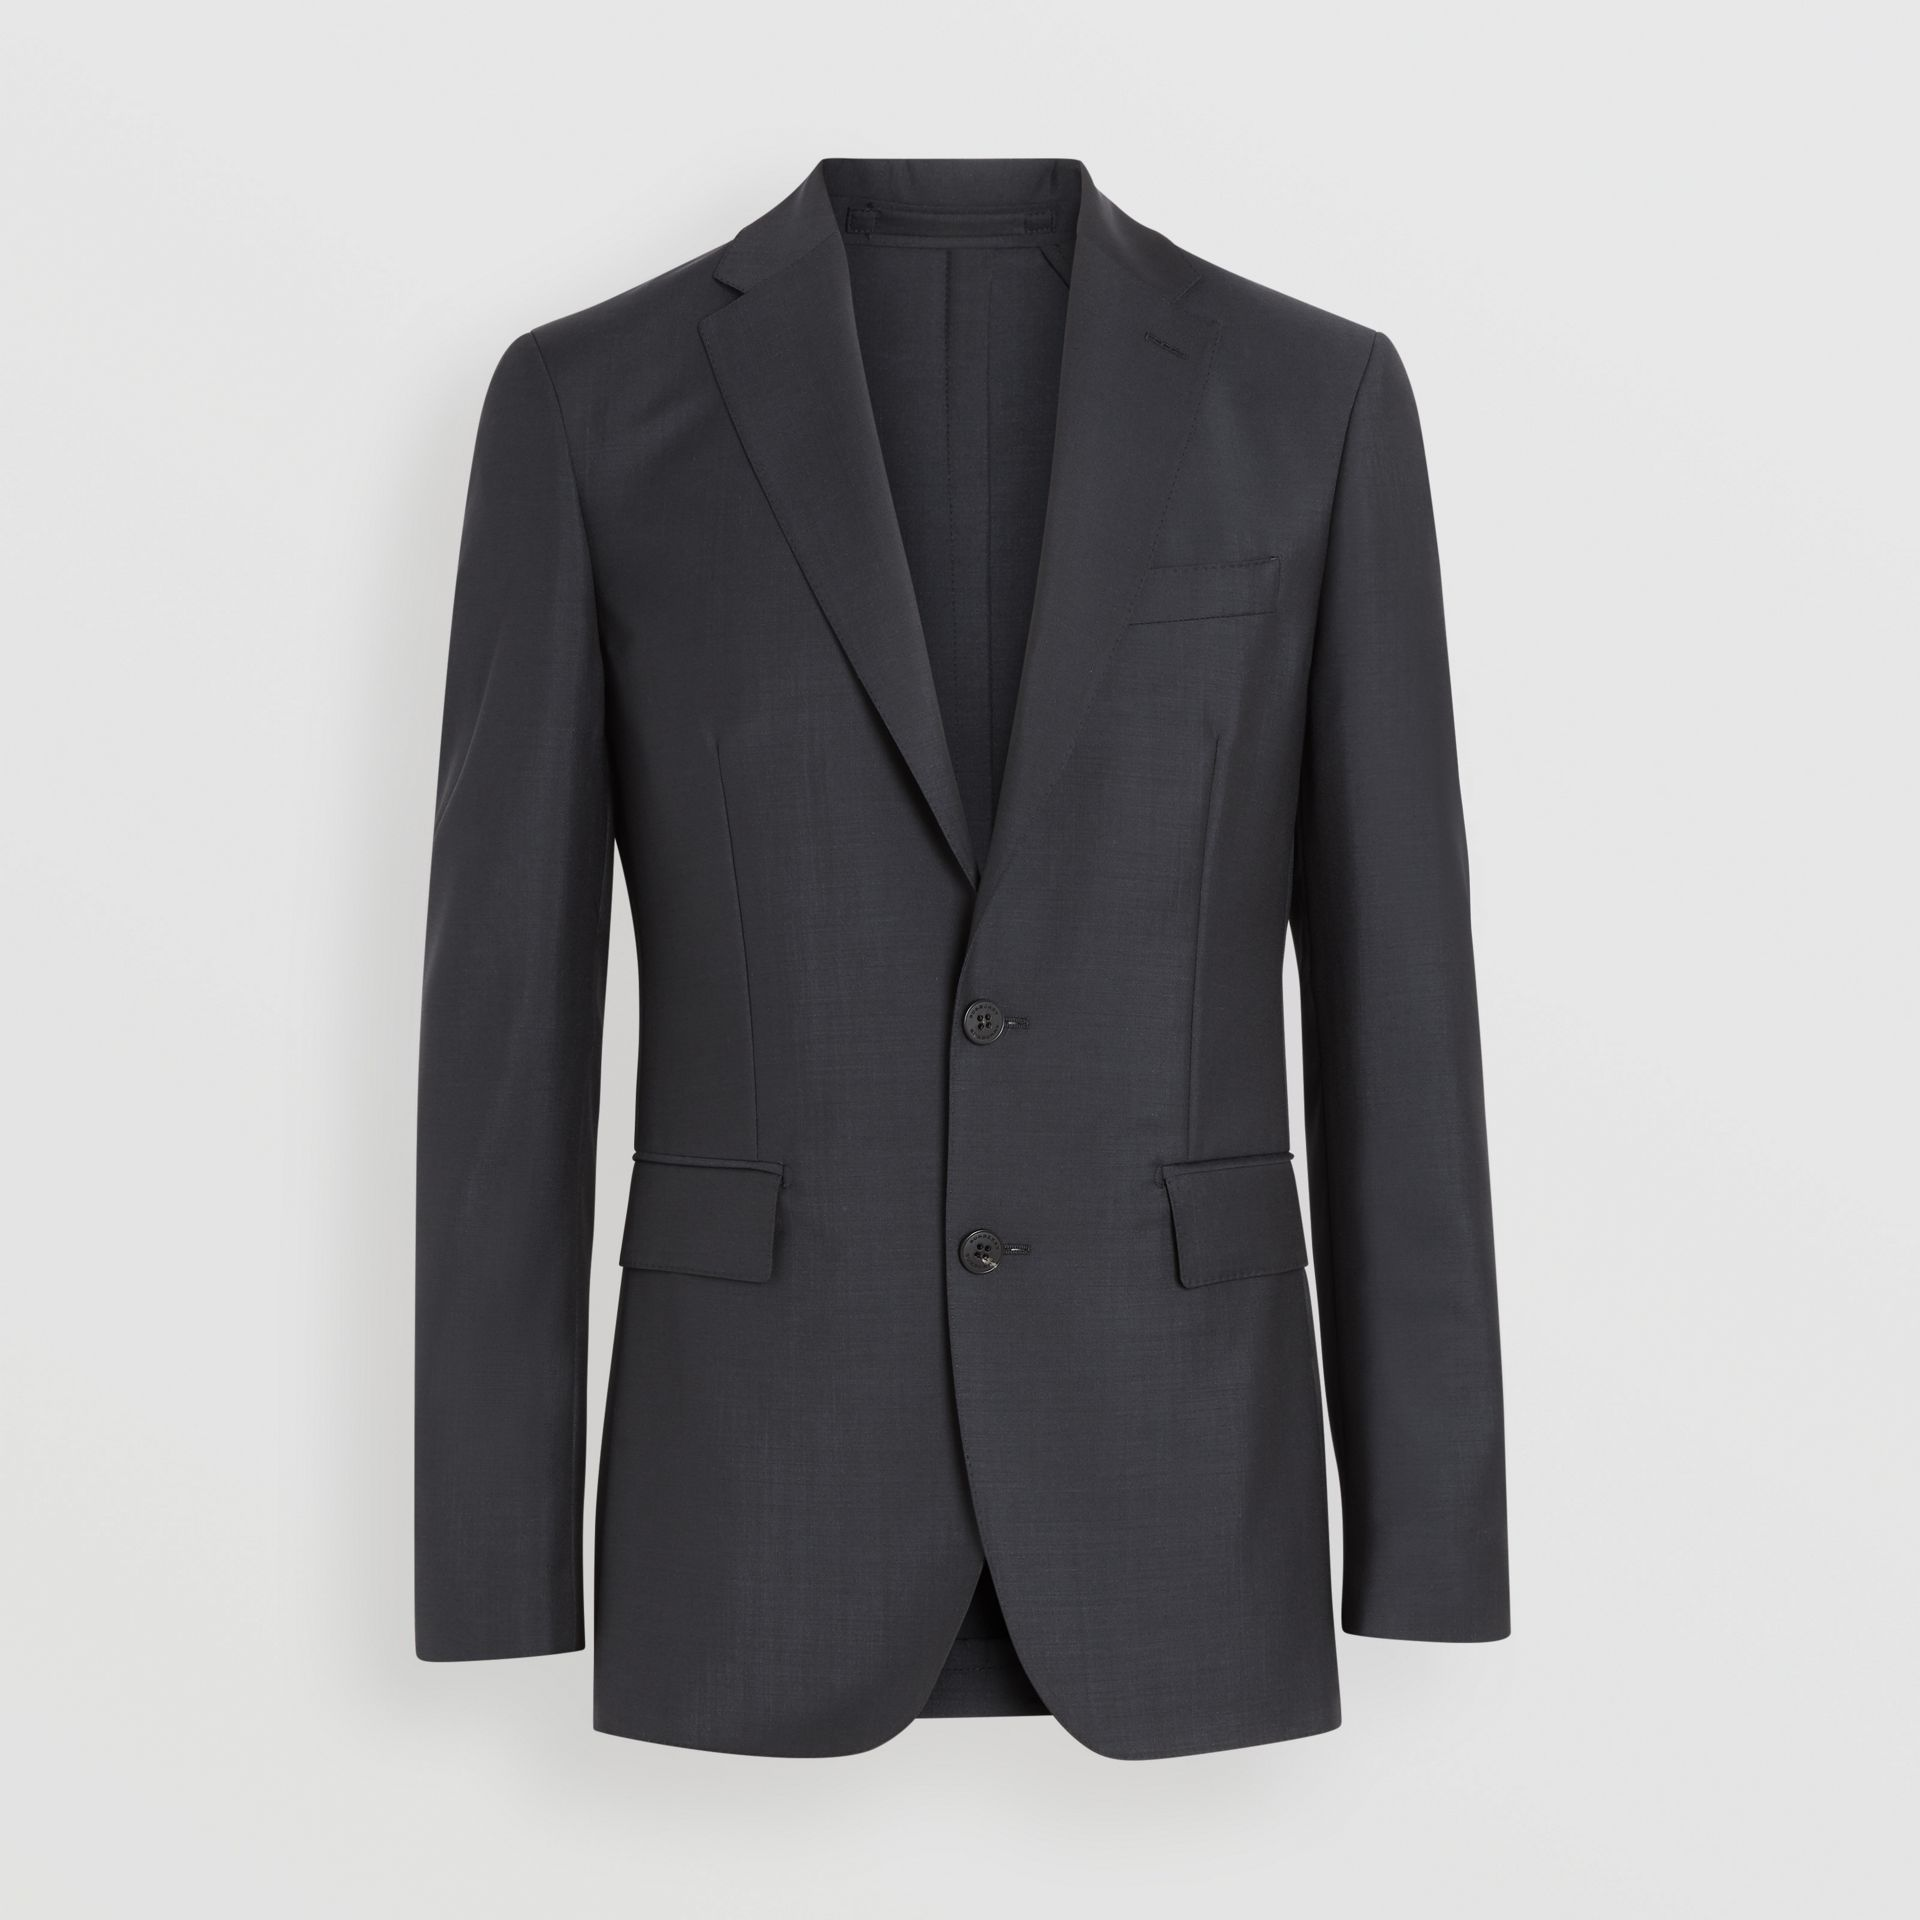 Soho Fit Wool Mohair Suit in Dark Grey Melange - Men | Burberry - gallery image 3